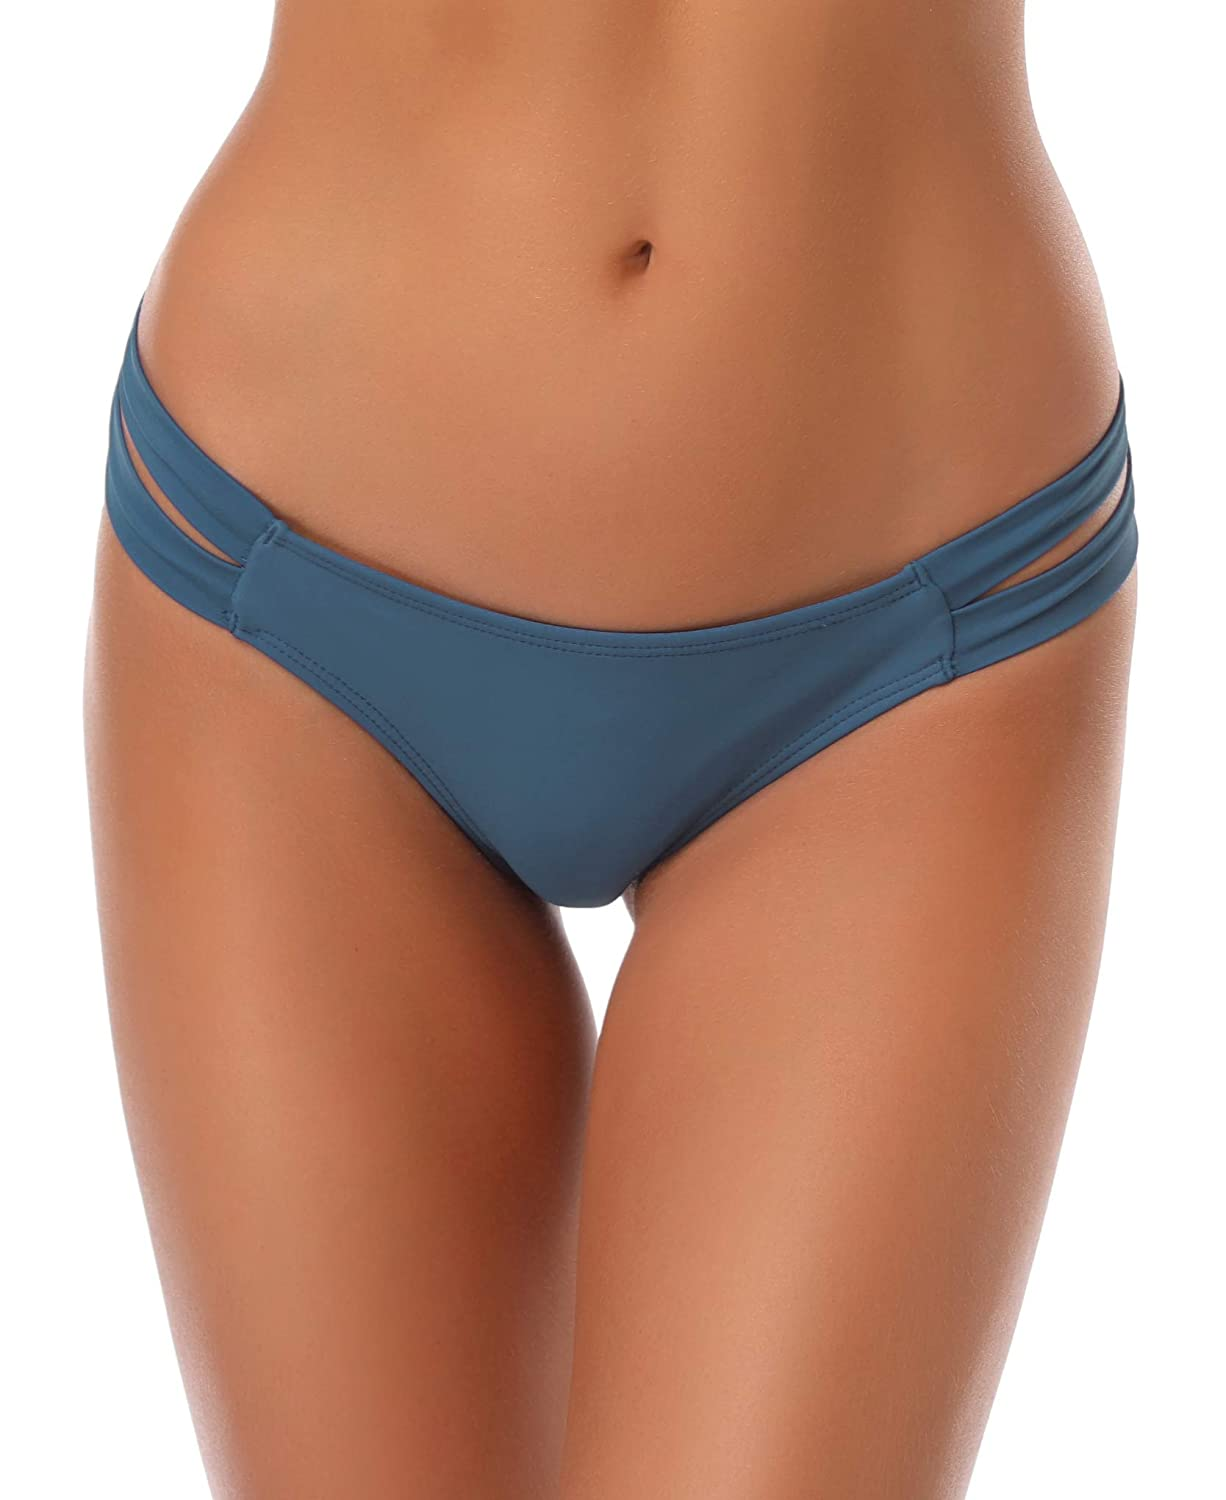 e0c8697f30097 Made from a stretchy and durable nylon-spandex blend and features fully  lined for snug fit and comfortable wear. The tanga style flatters a wide  range of ...